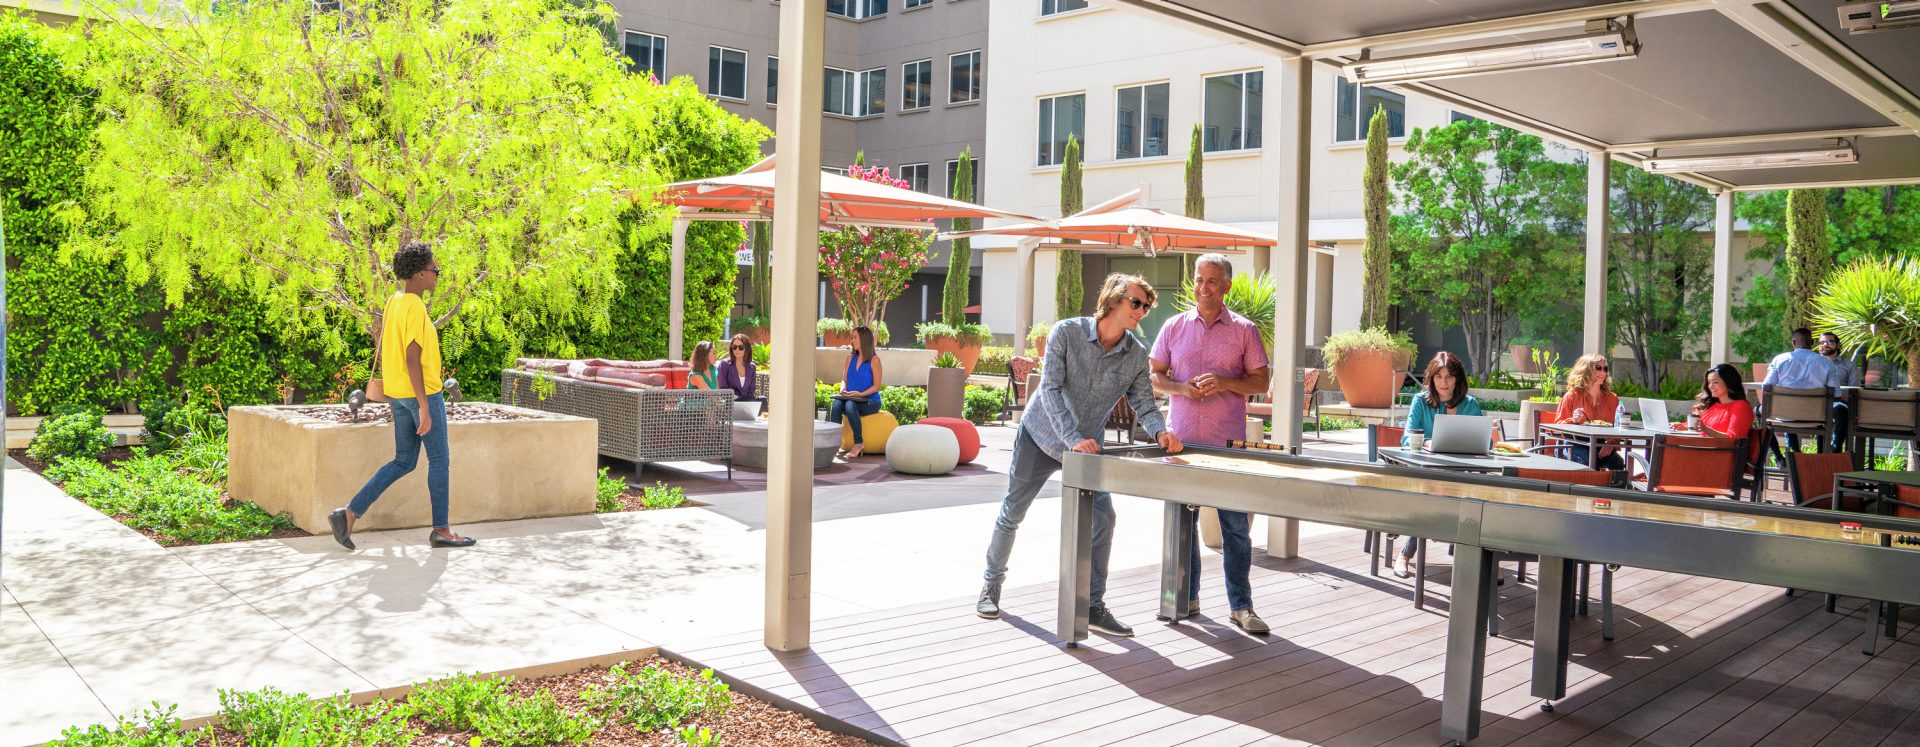 Lifestyle photography of the outdoor workpace and areas at Western Asset Plaza in Pasadena, CA